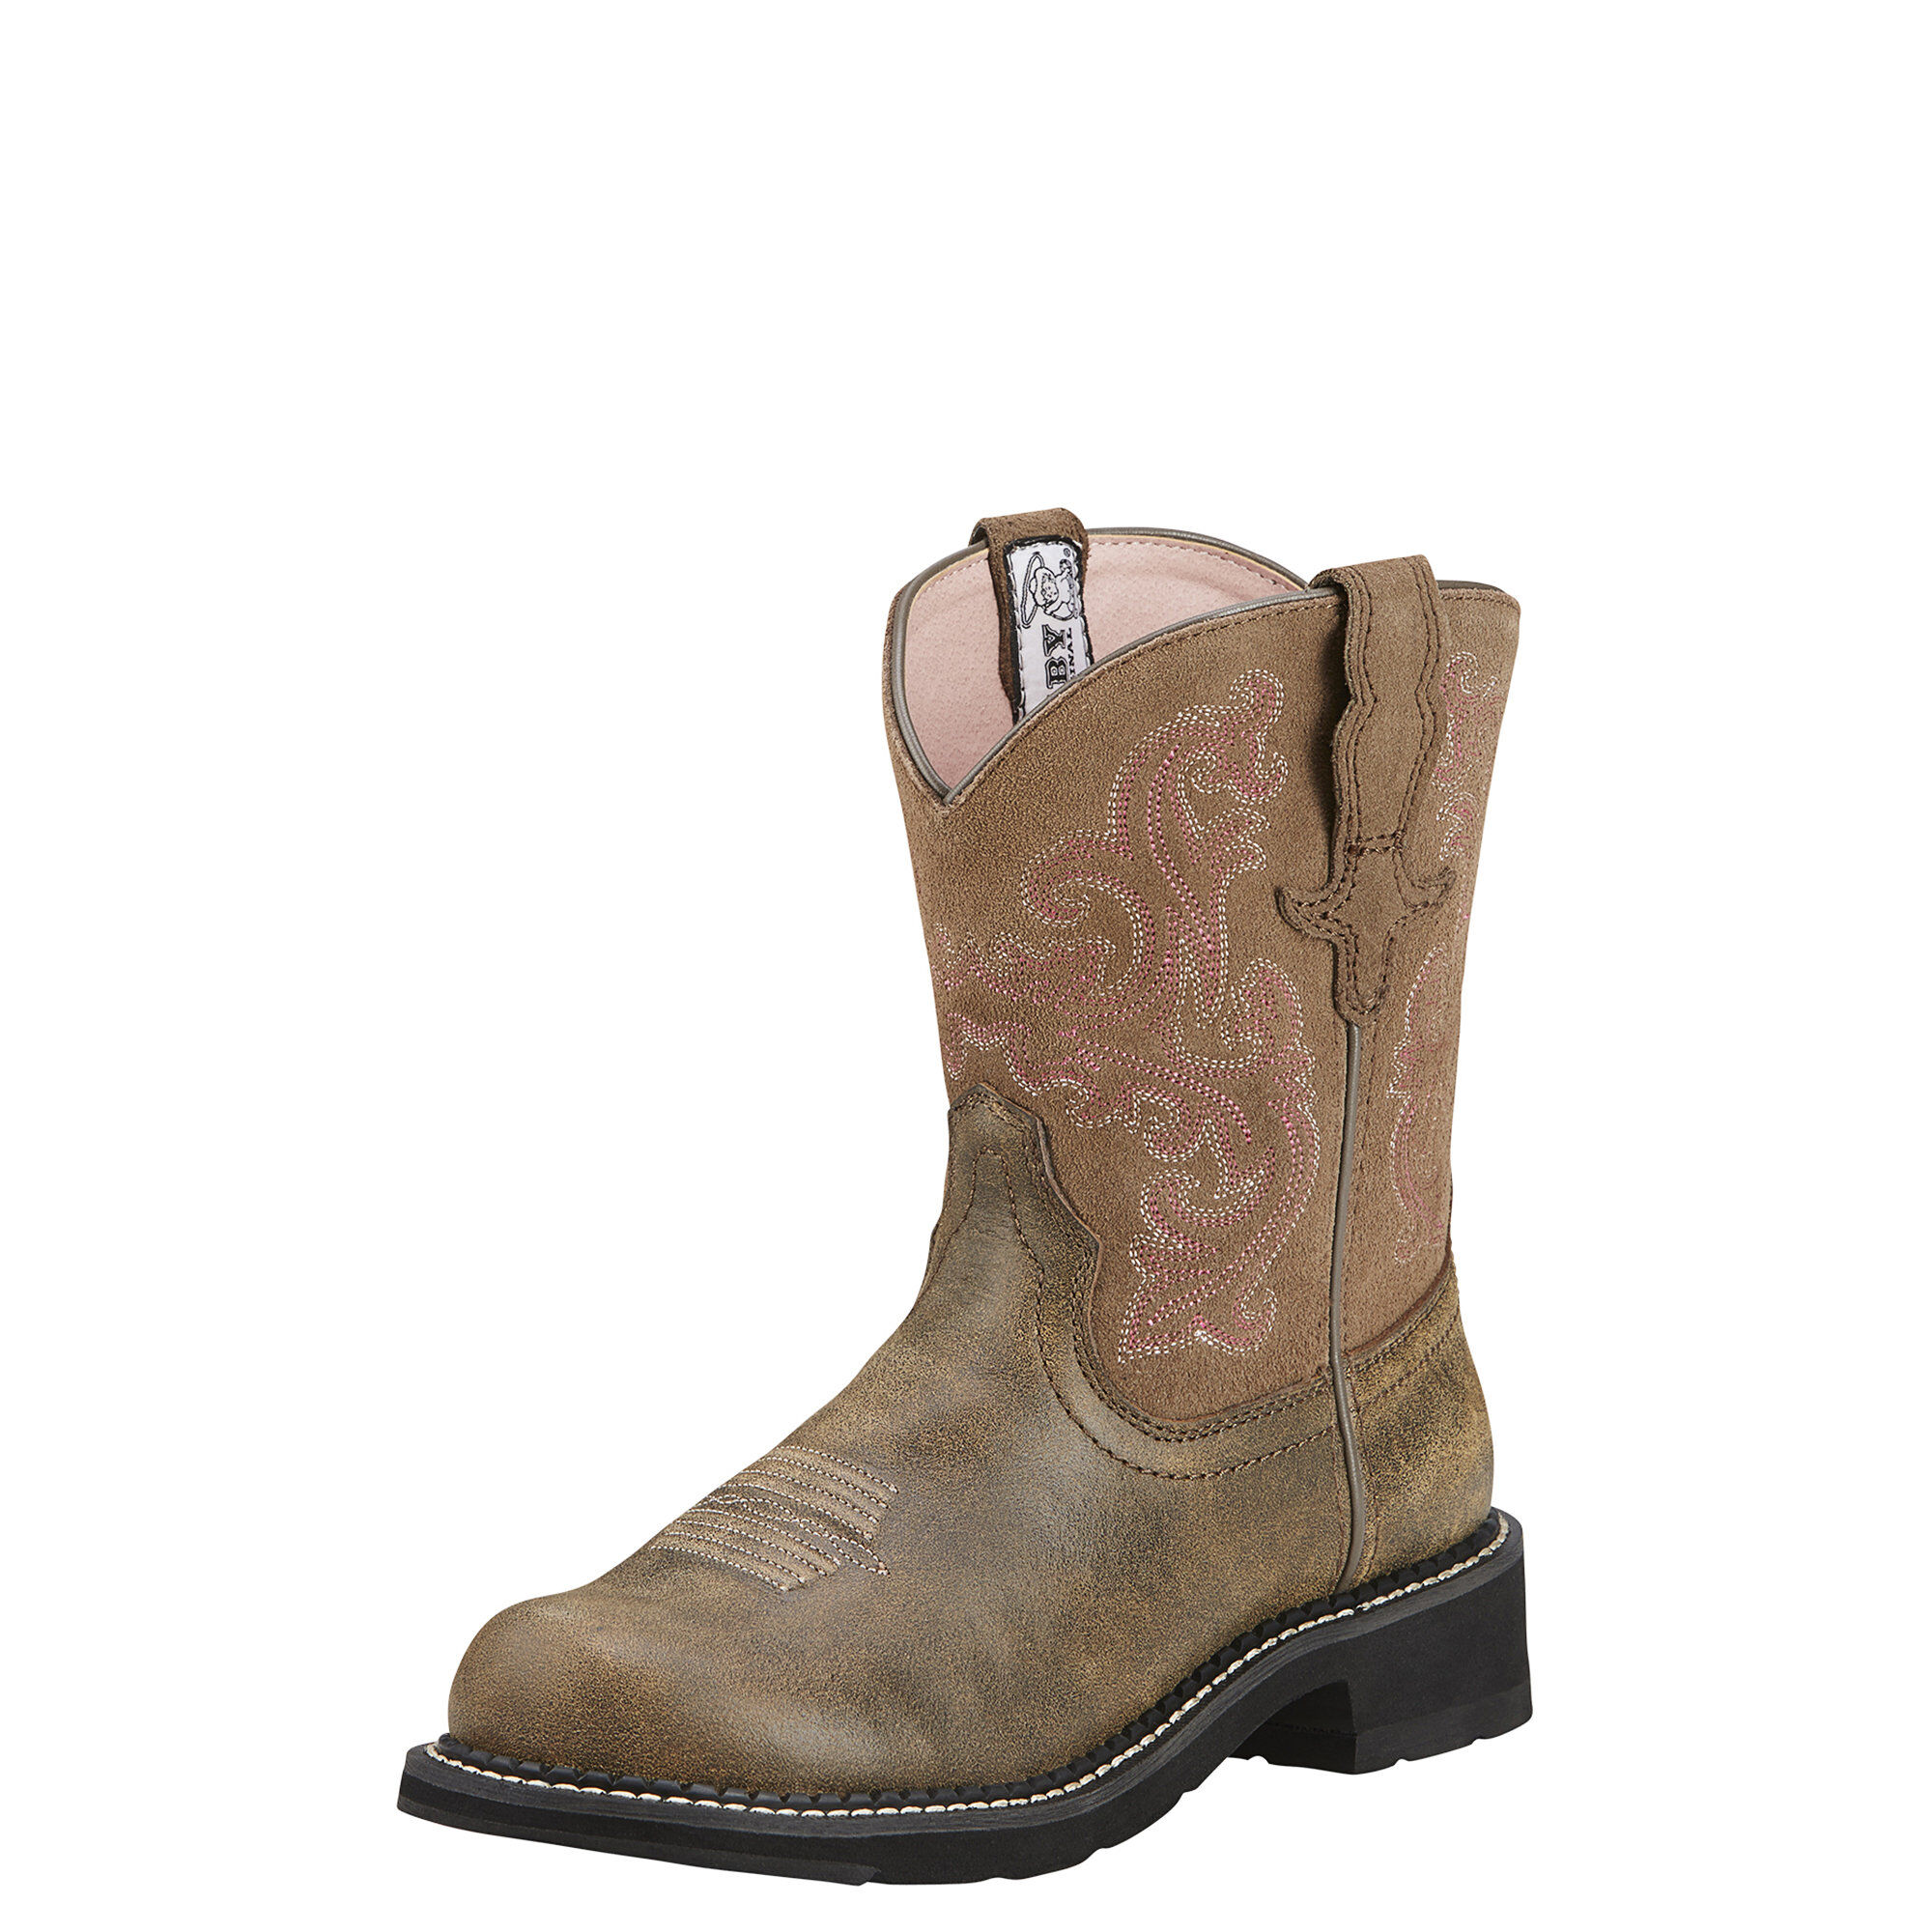 Women's Fatbaby II Western Boots in Brown Bomber by Ariat